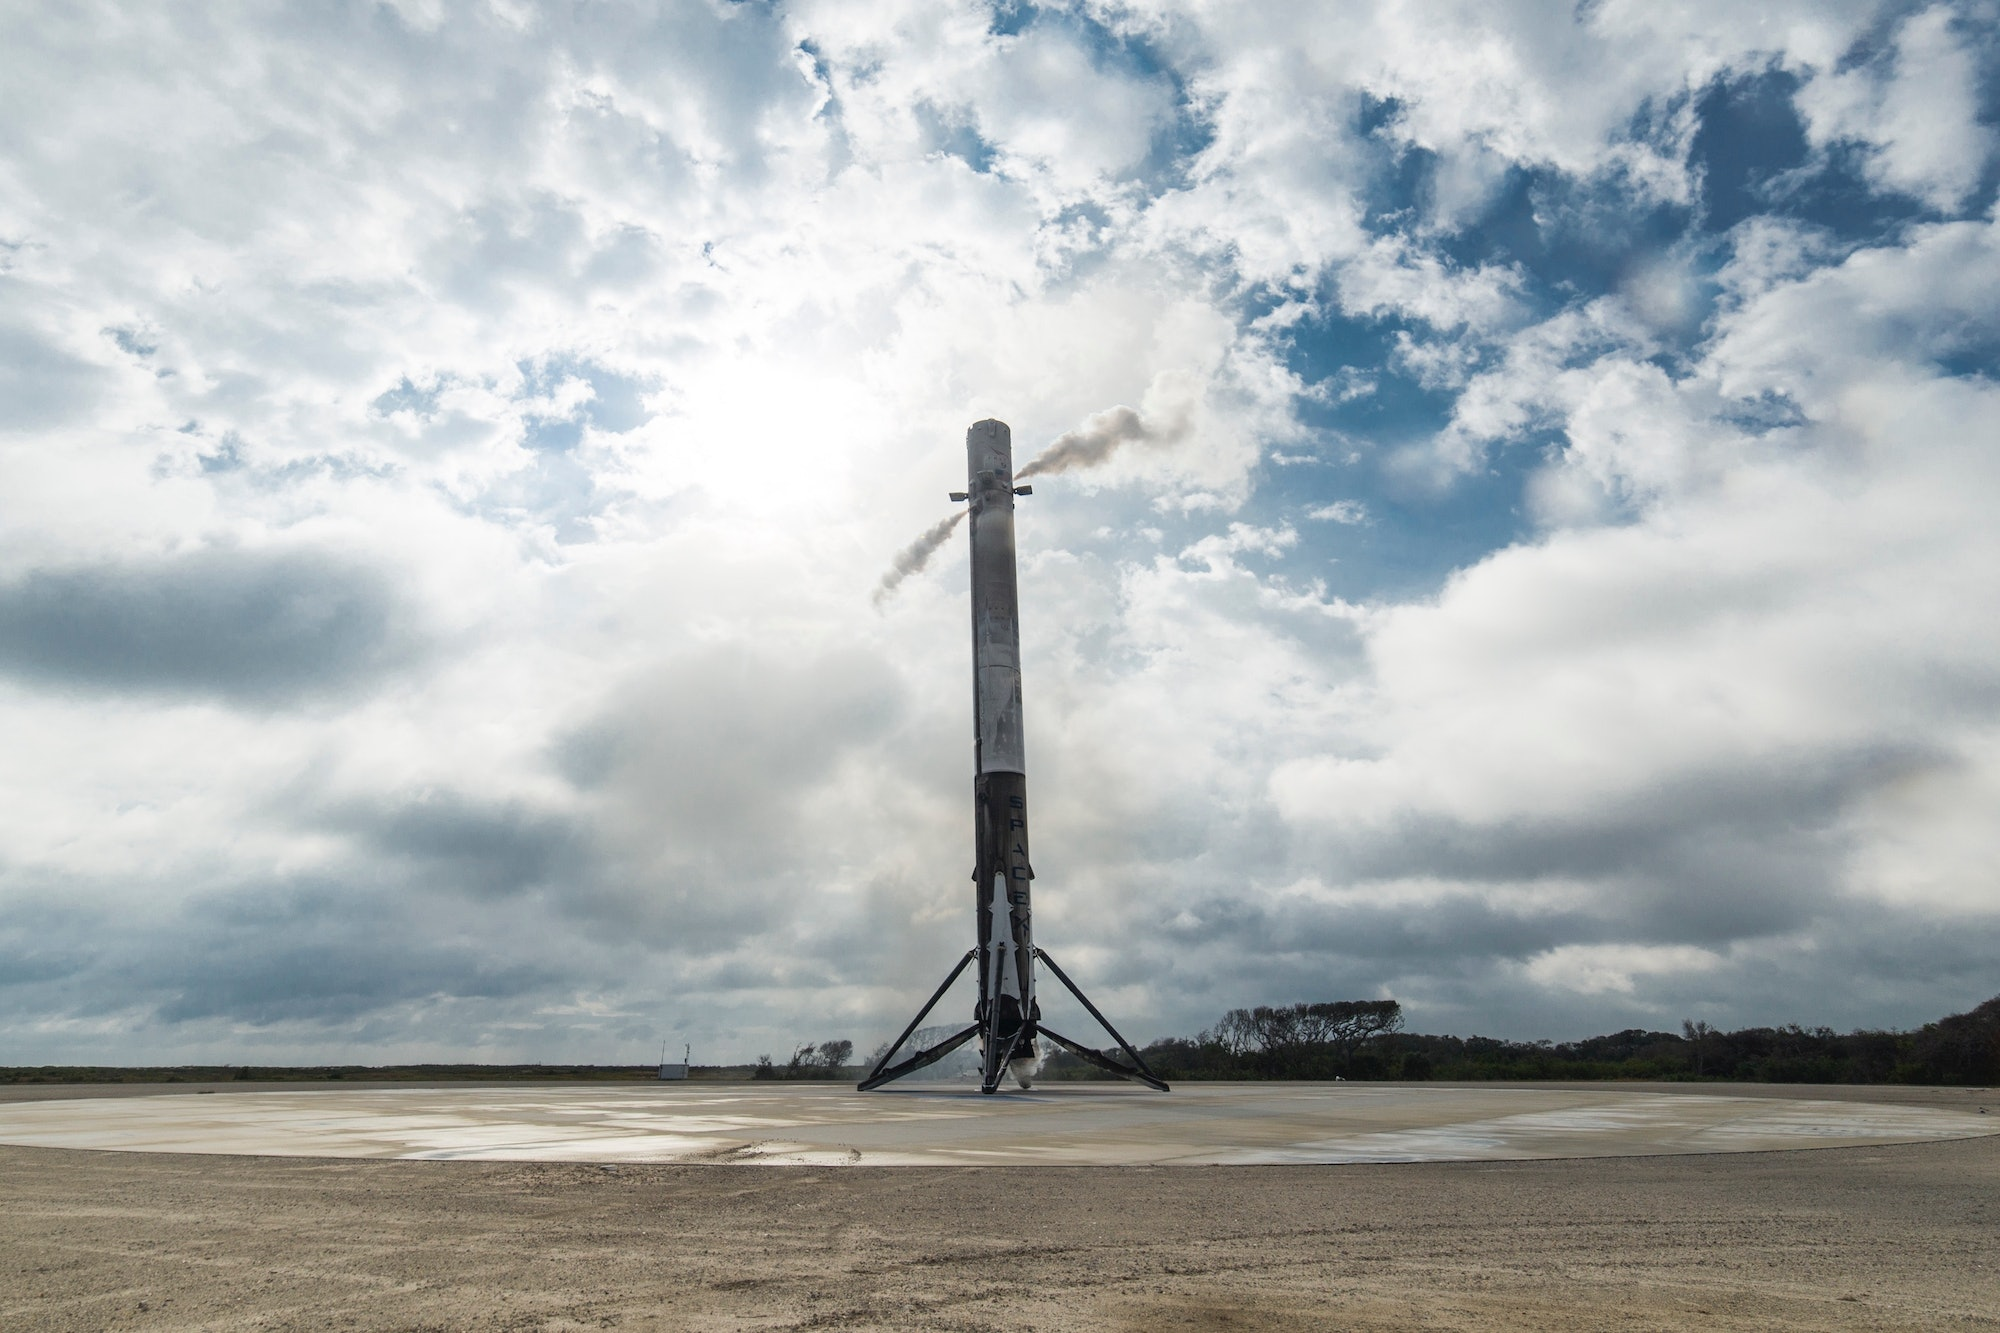 A Falcon 9 first-stage rocket booster back on Earth at the LZ-1 landing pad in February.